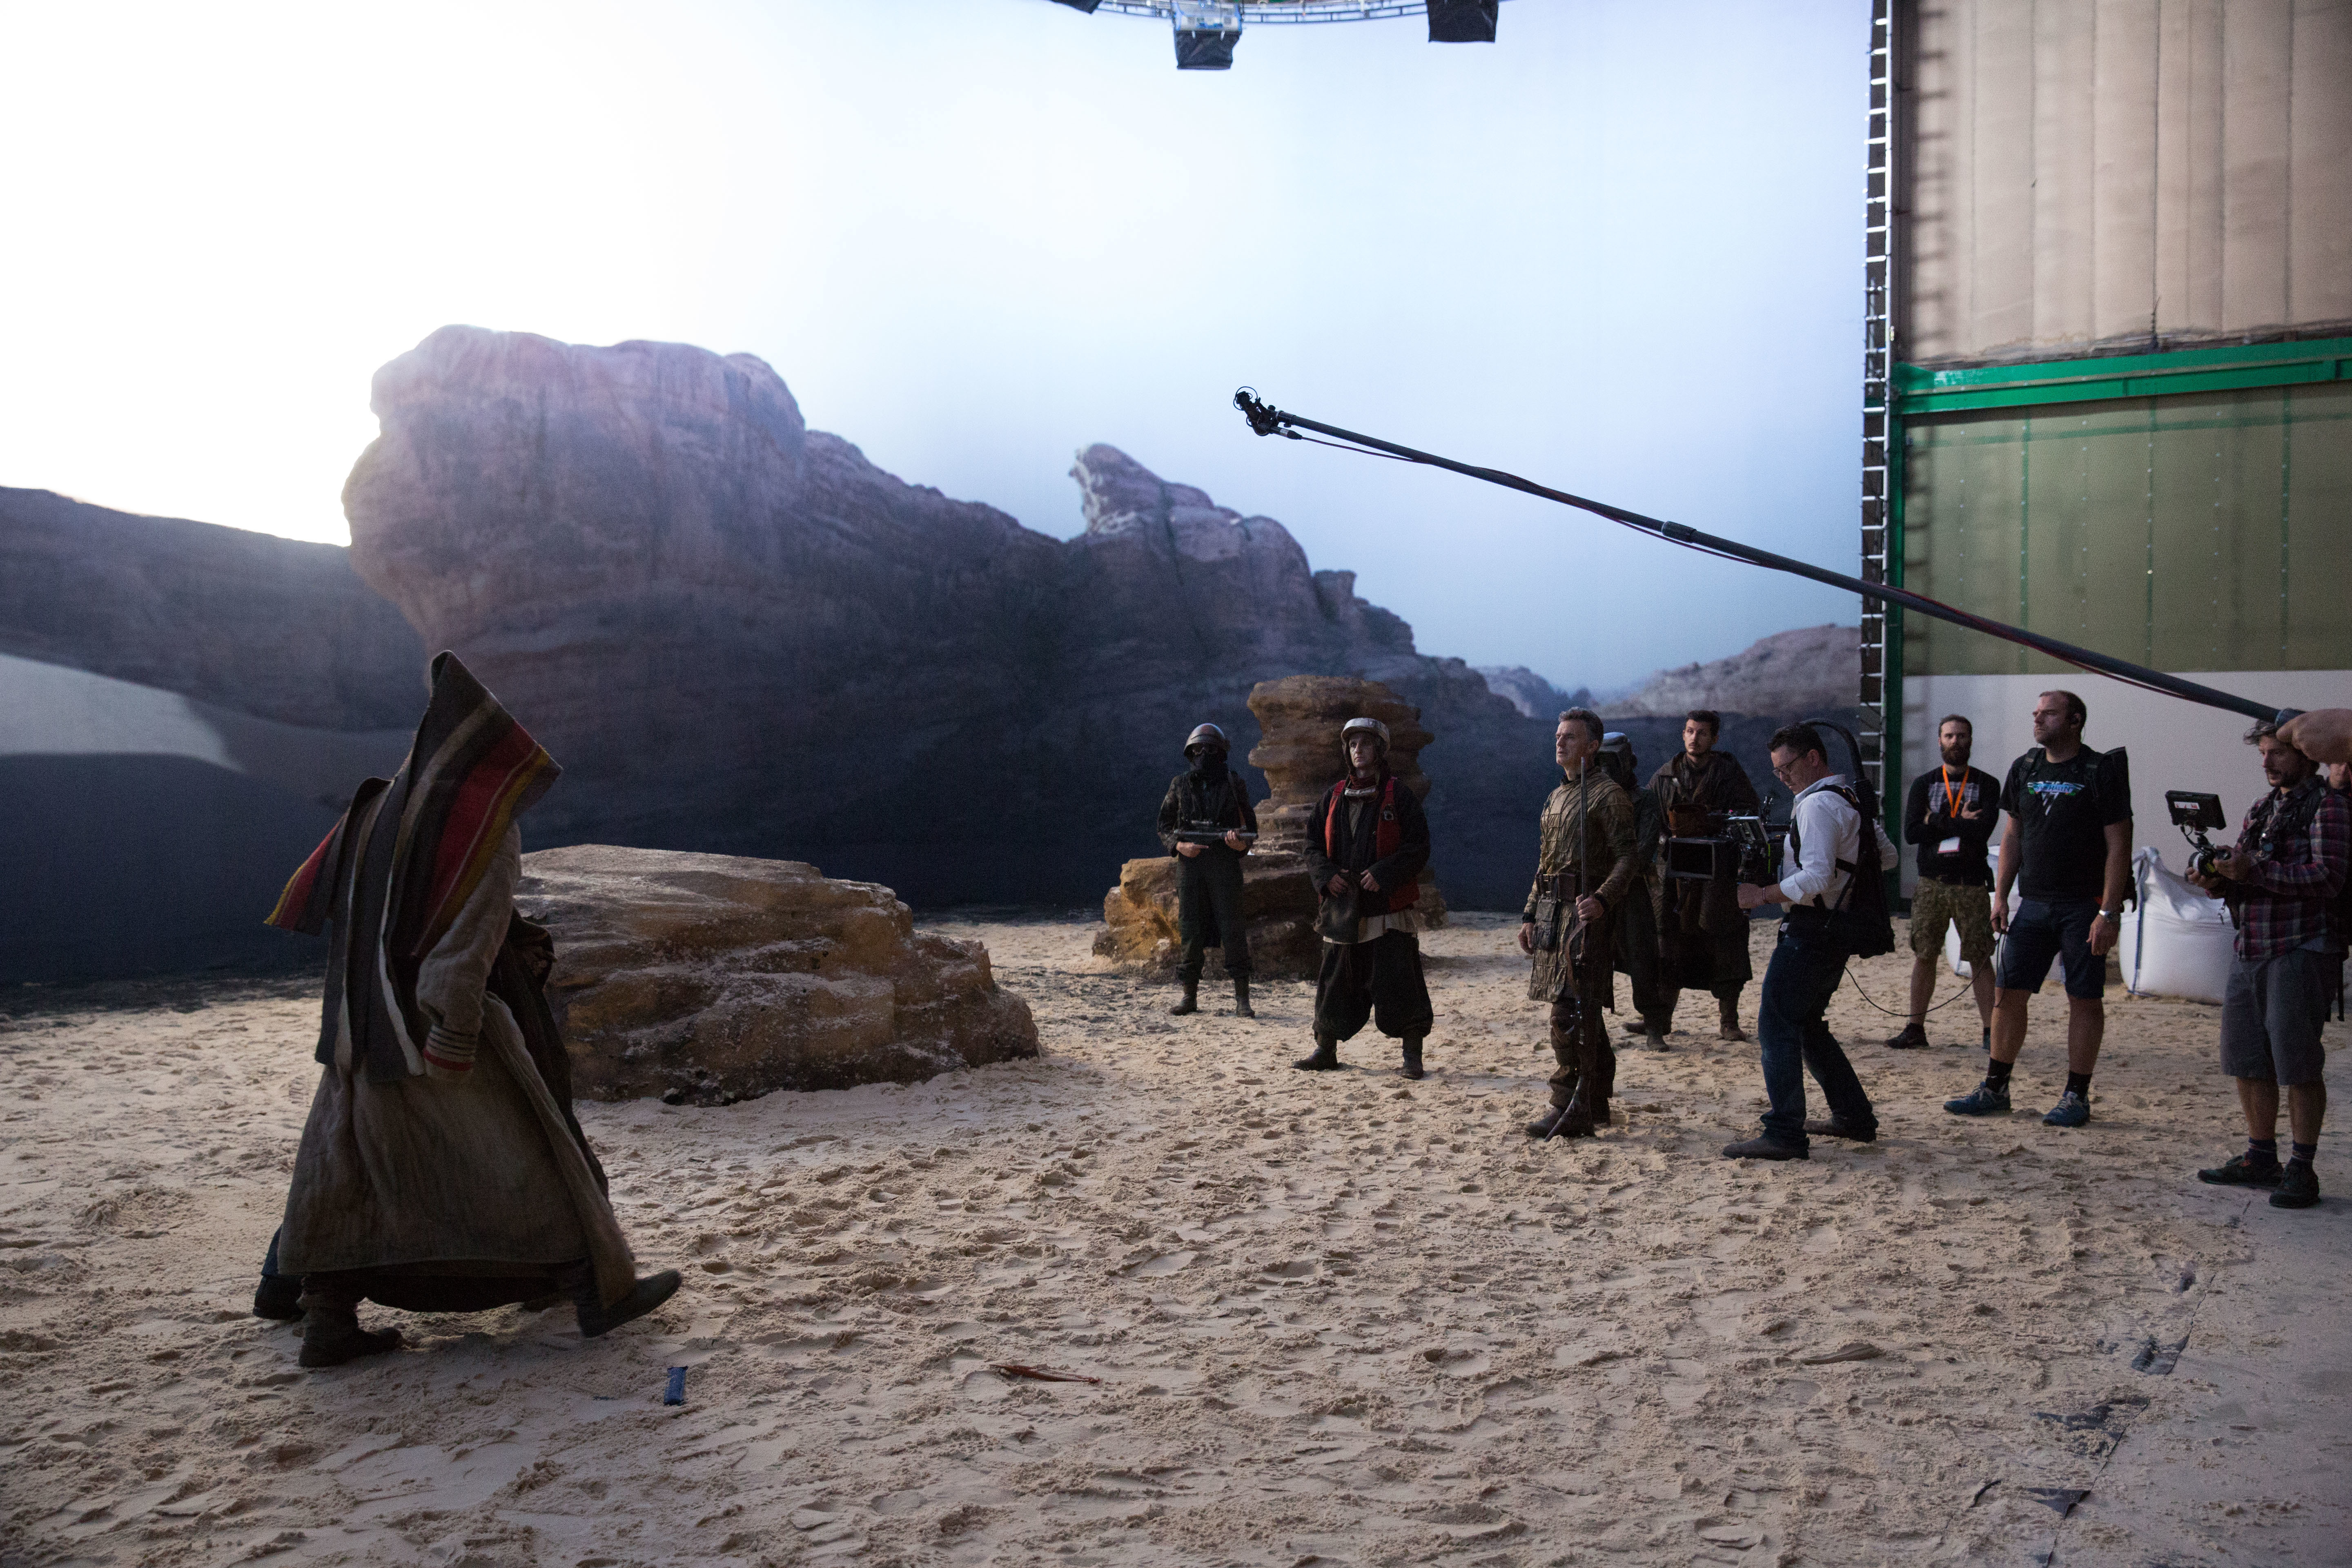 Fraser (operating the camera) and crew capture a Jedha exterior on stage, in front of a backing.